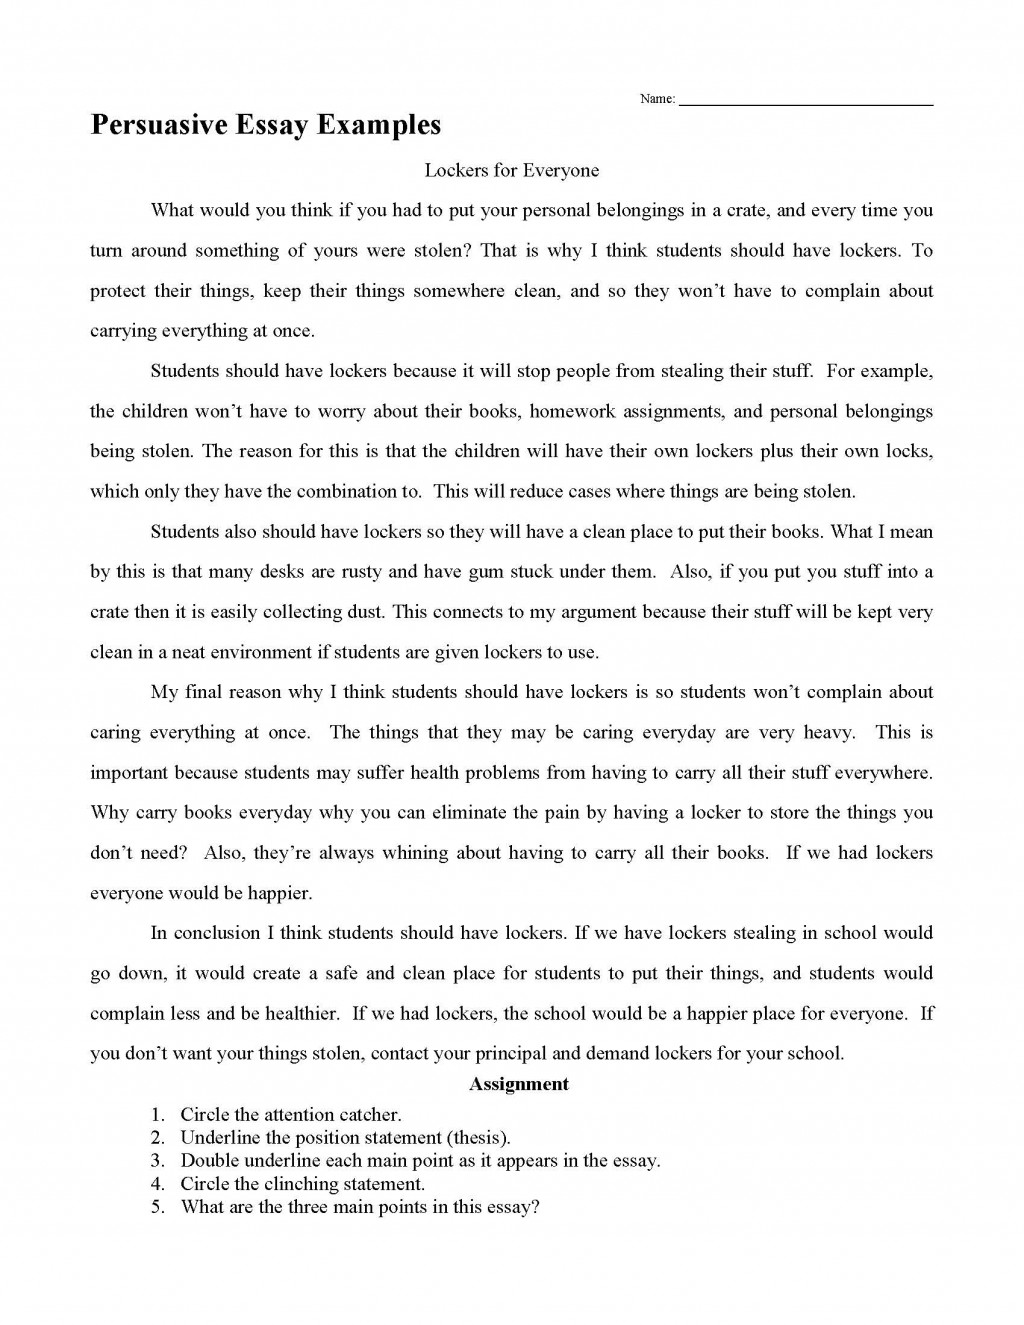 001 Persuasive Essay Examples Example Of Incredible A Argumentative Bullying About Anti Sample For 5th Grade Large